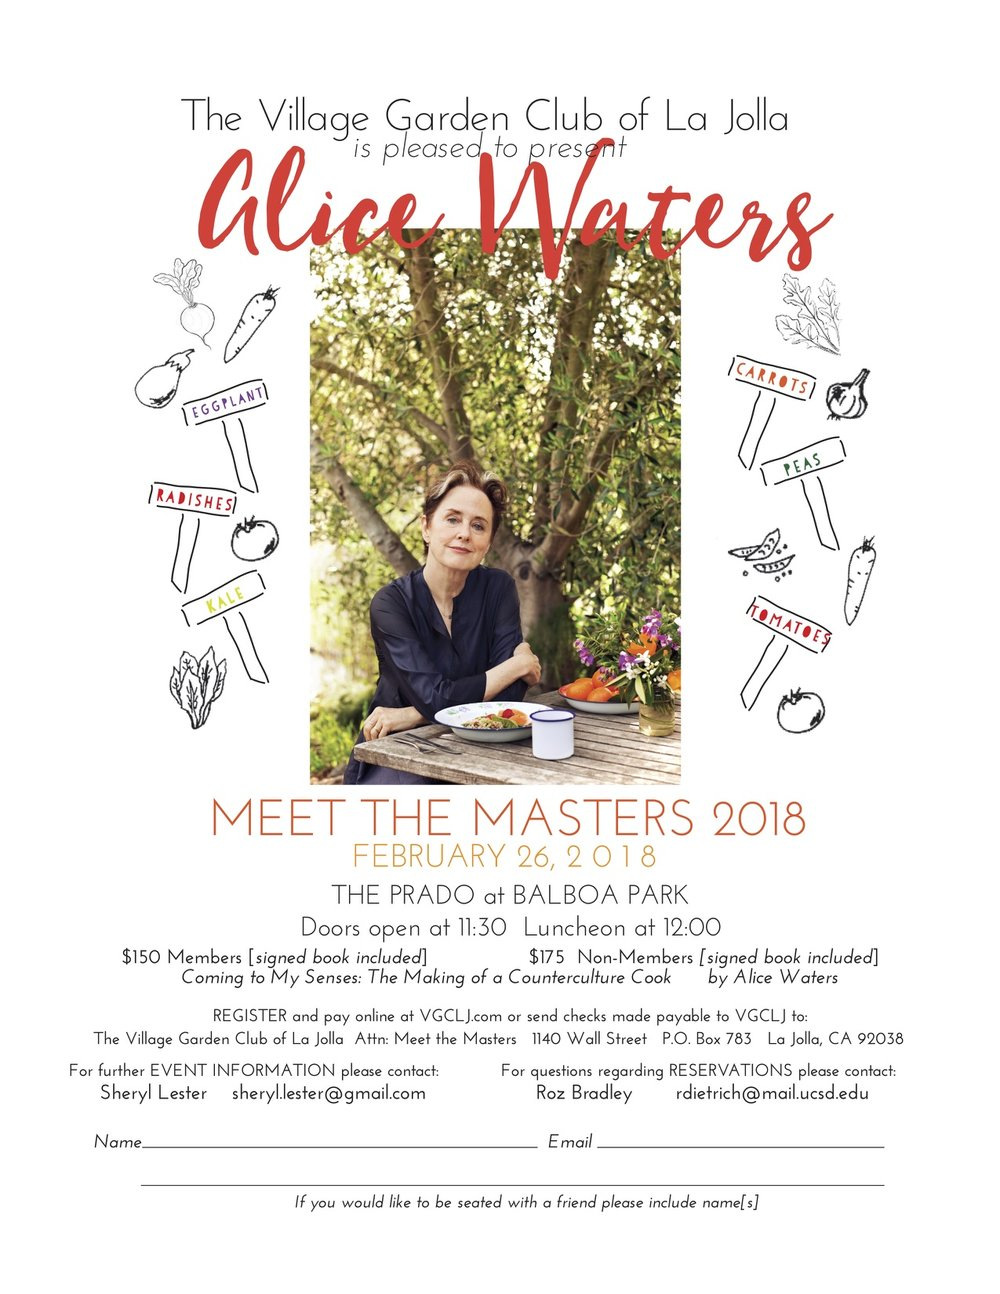 Meet the Masters Flyer (1).jpg